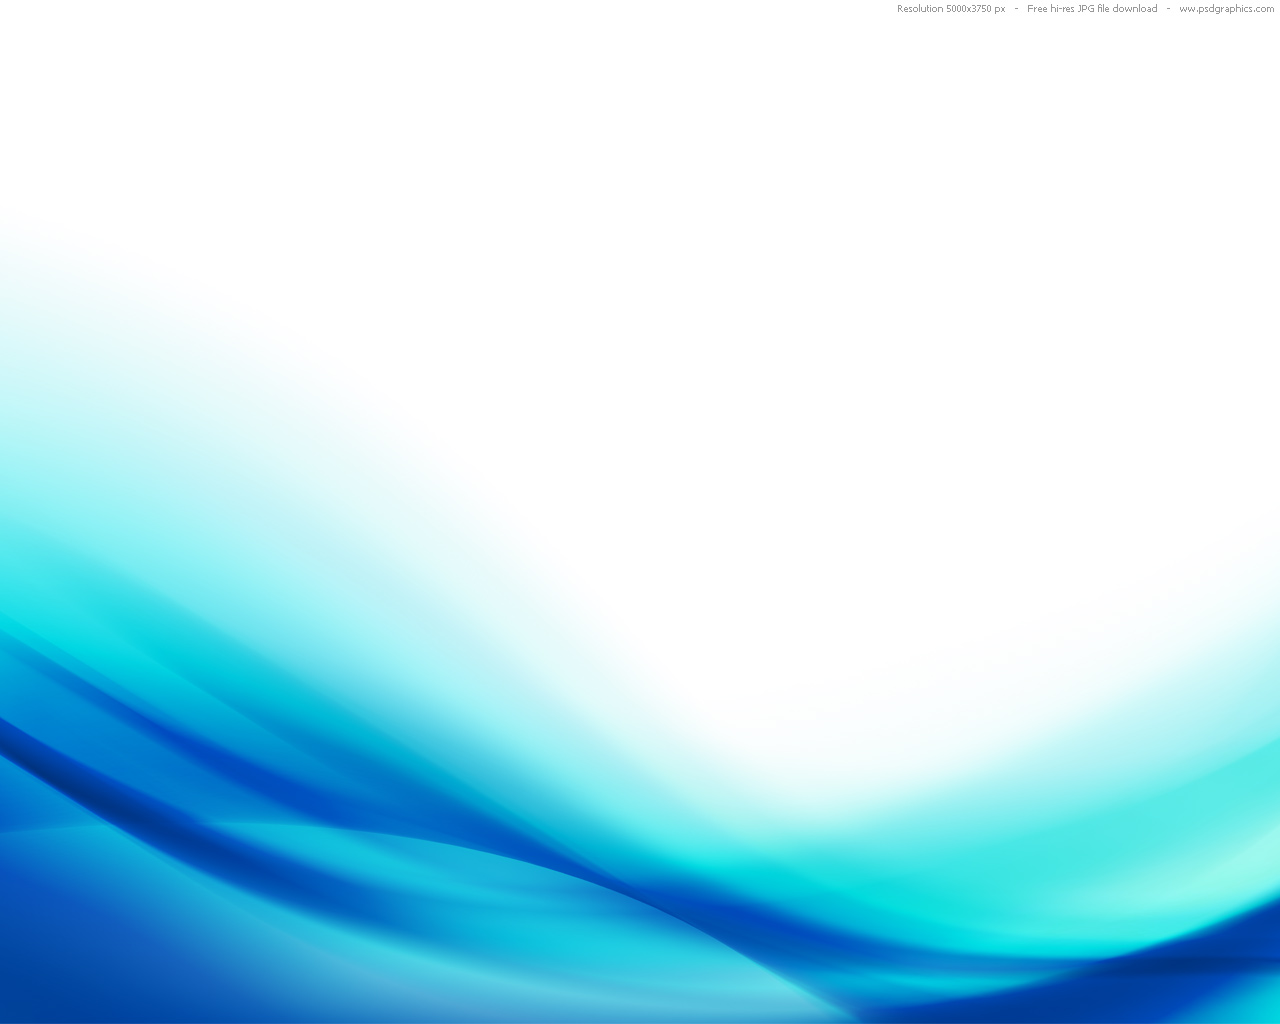 Abstract background design 1280x1024